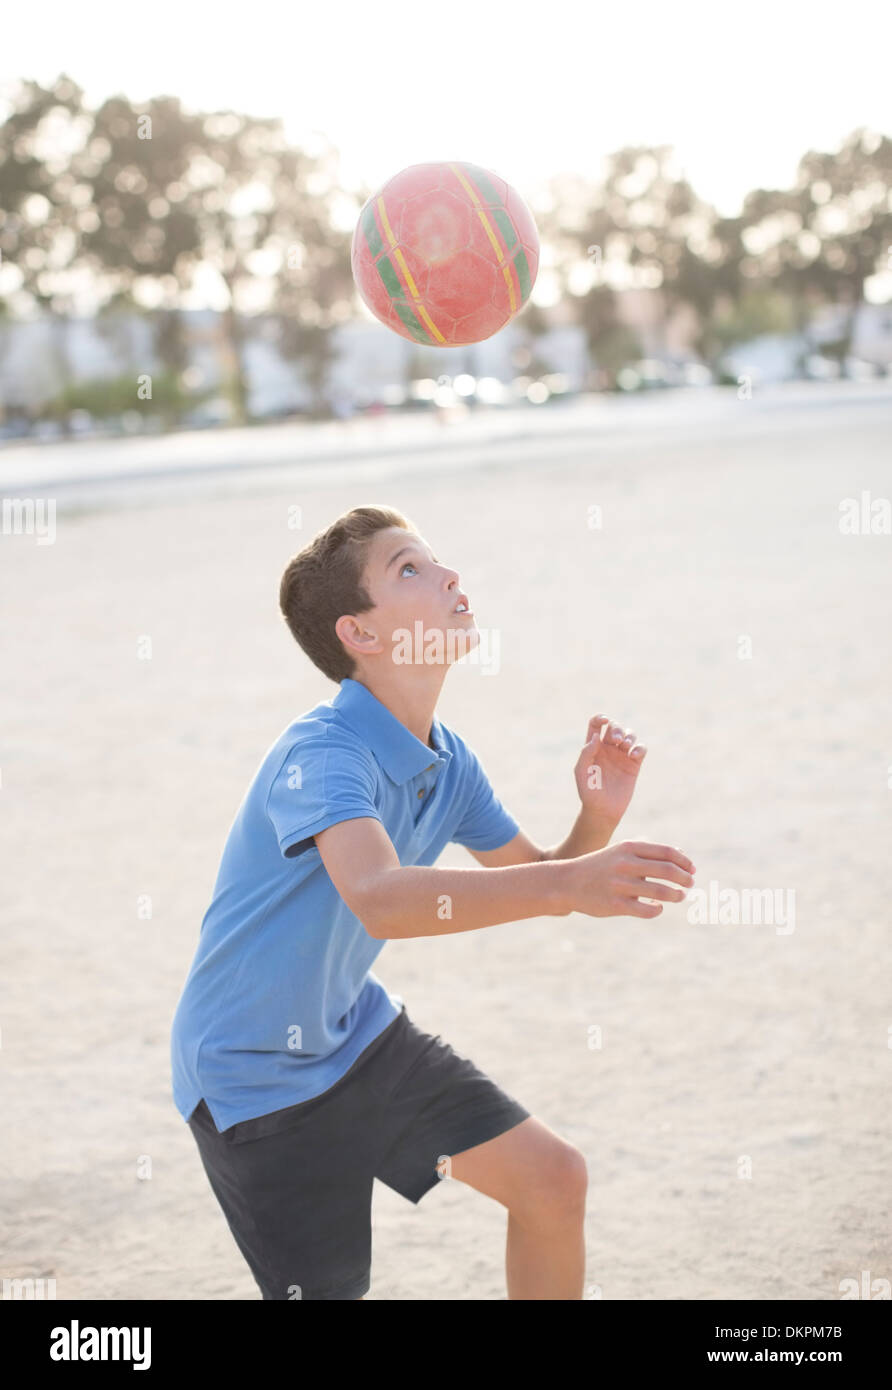 Boy heading soccer ball - Stock Image